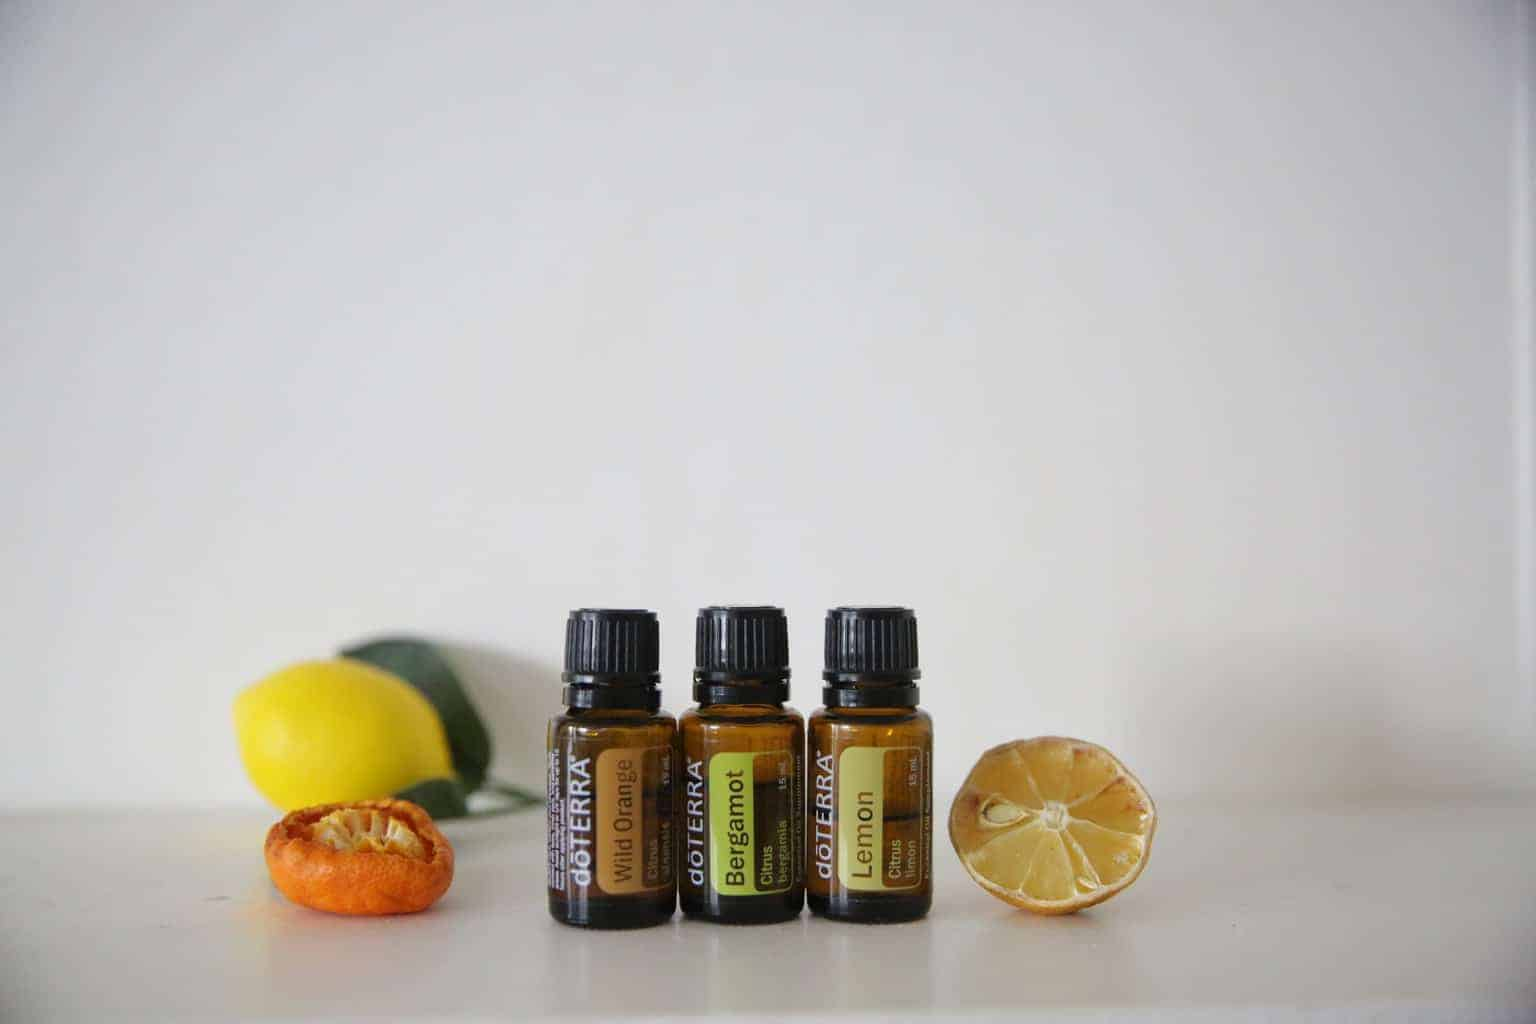 Essential oil diffuser blend oils with dried lemon and orange